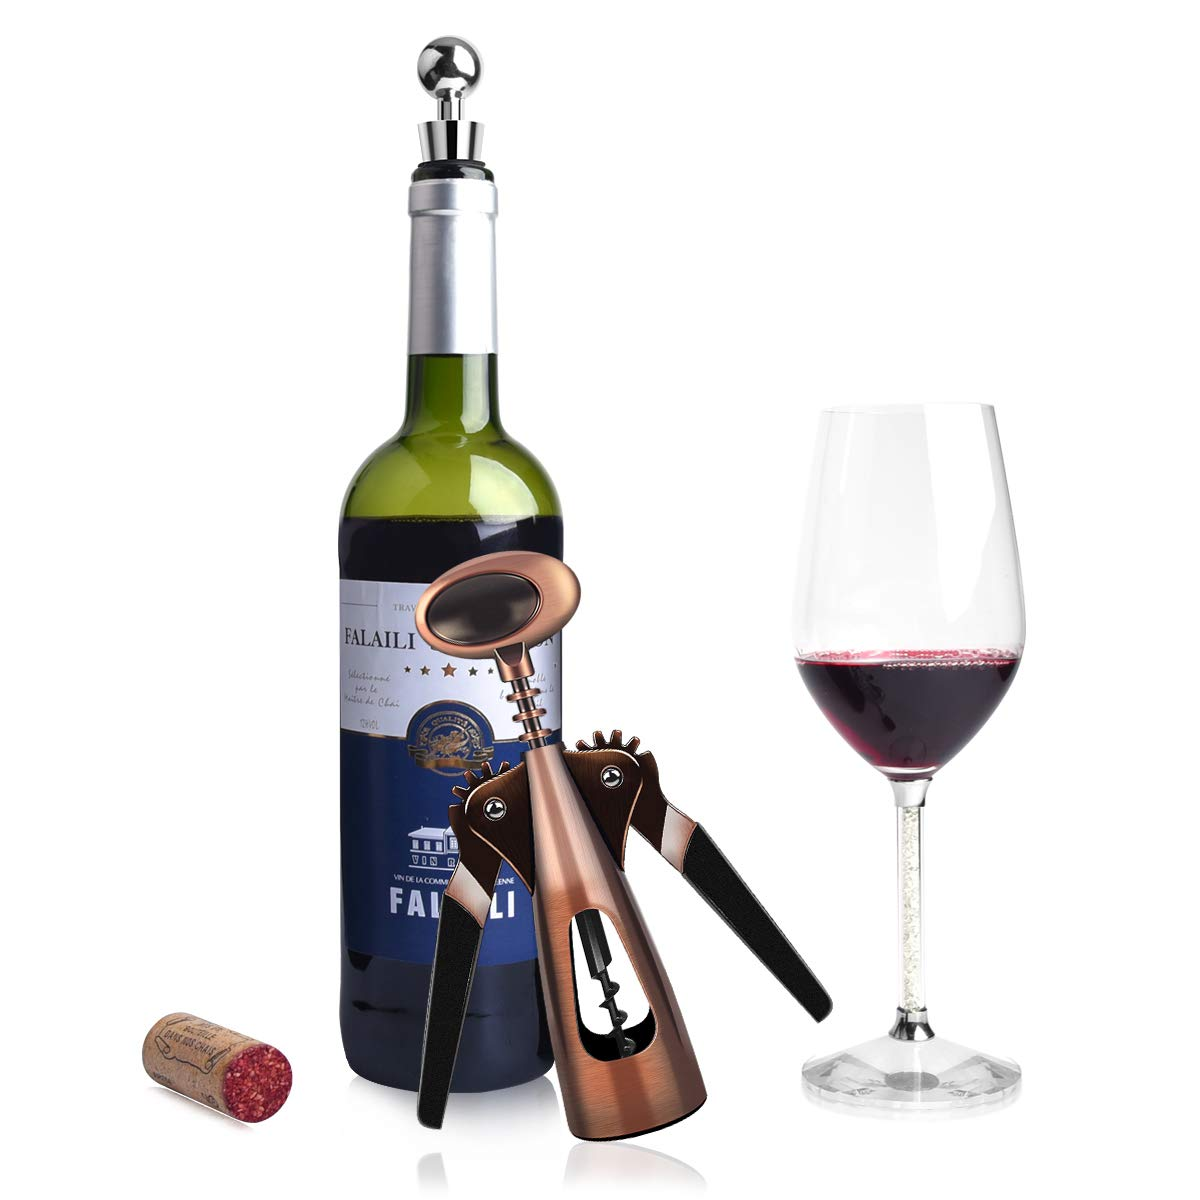 AUNOOL Wing Corkscrew Wine Opener - Red Bronze Wing Corkscrew Stainless Multifunction Professional Efficient All-in-one Wine Opener Wine Accessory Gift Set with Gift Ribbons by AUNOOL (Image #4)